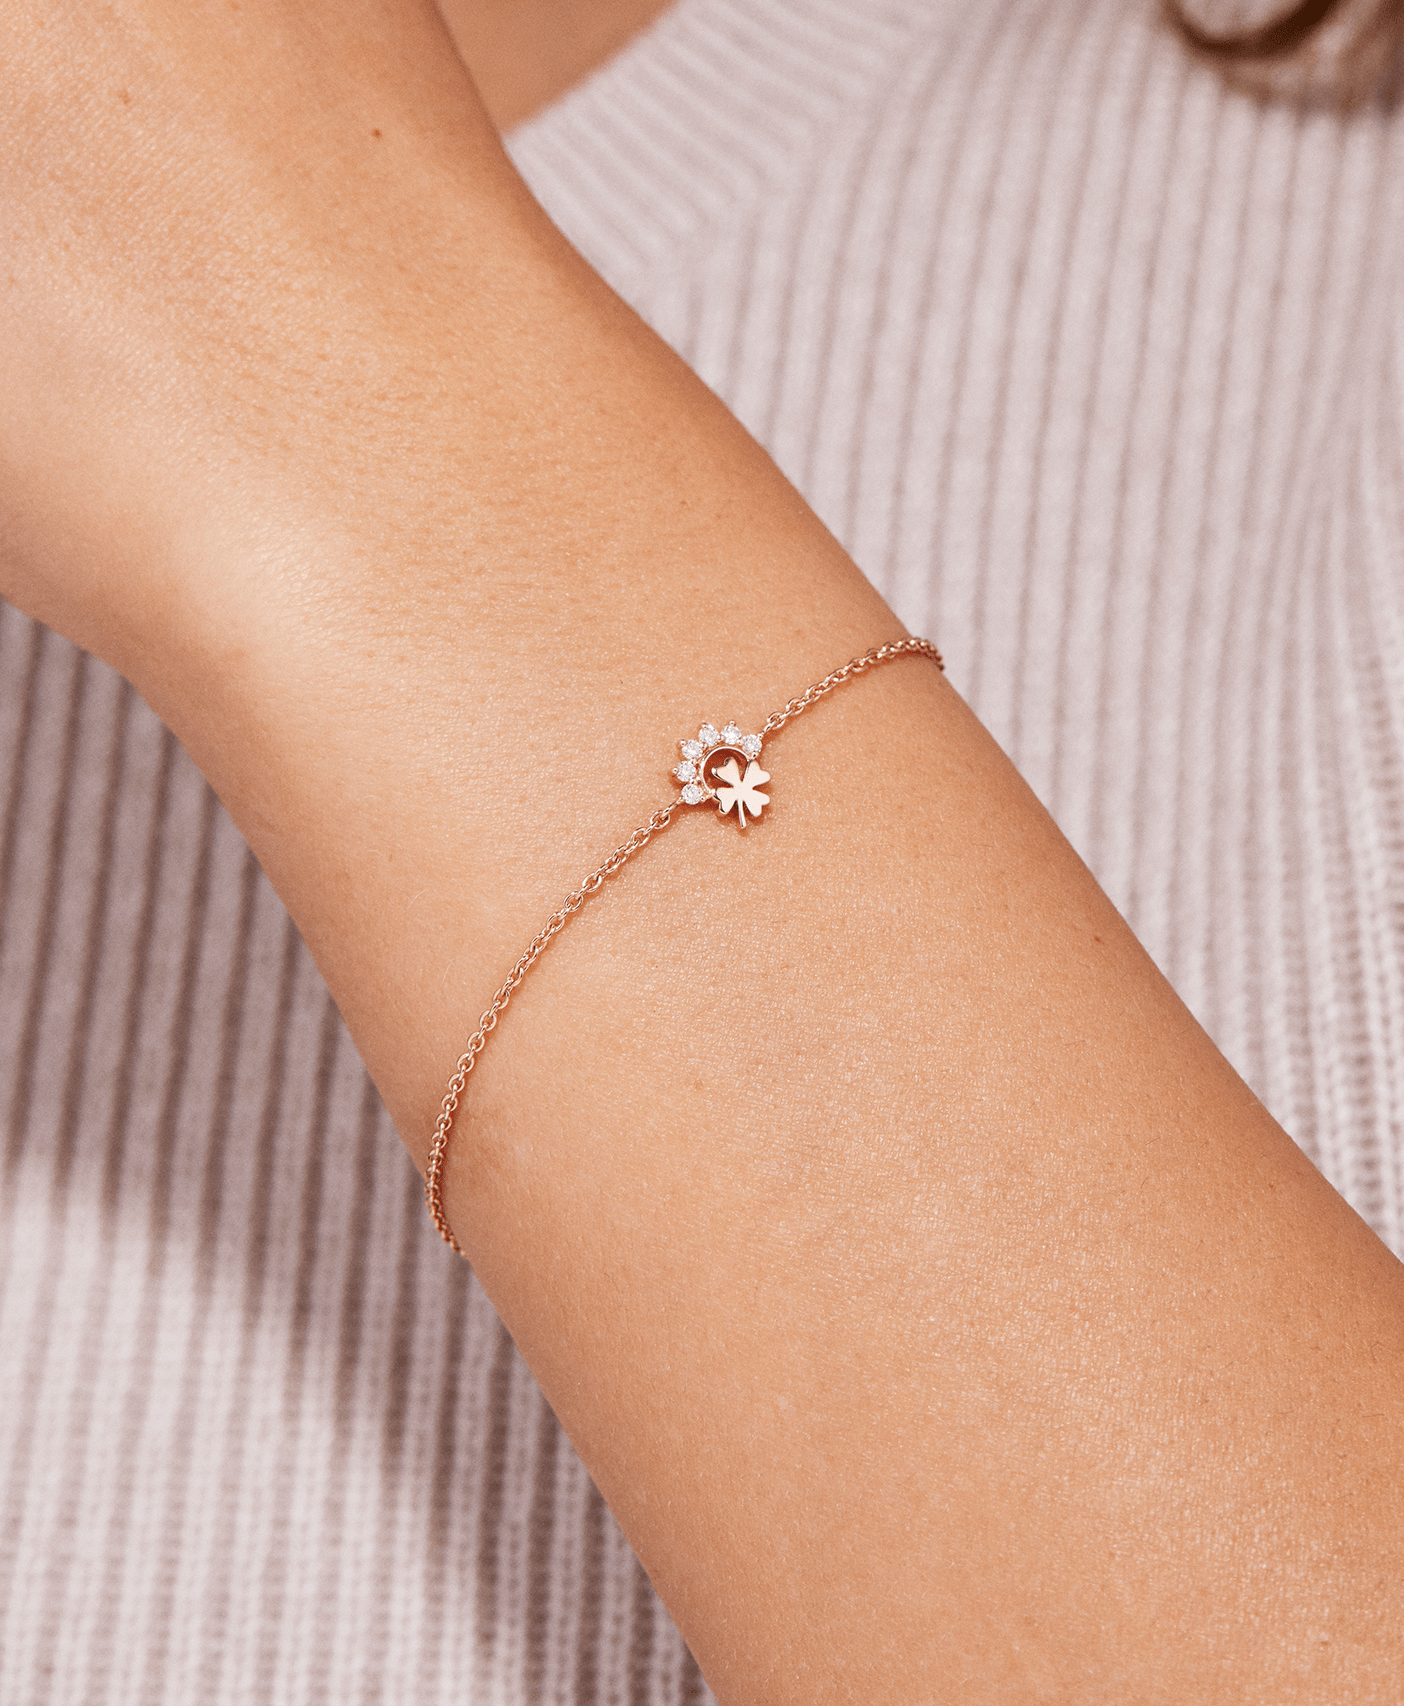 Small Luck Bracelet: Discover Luxury Fine Jewelry | Nouvel Heritage